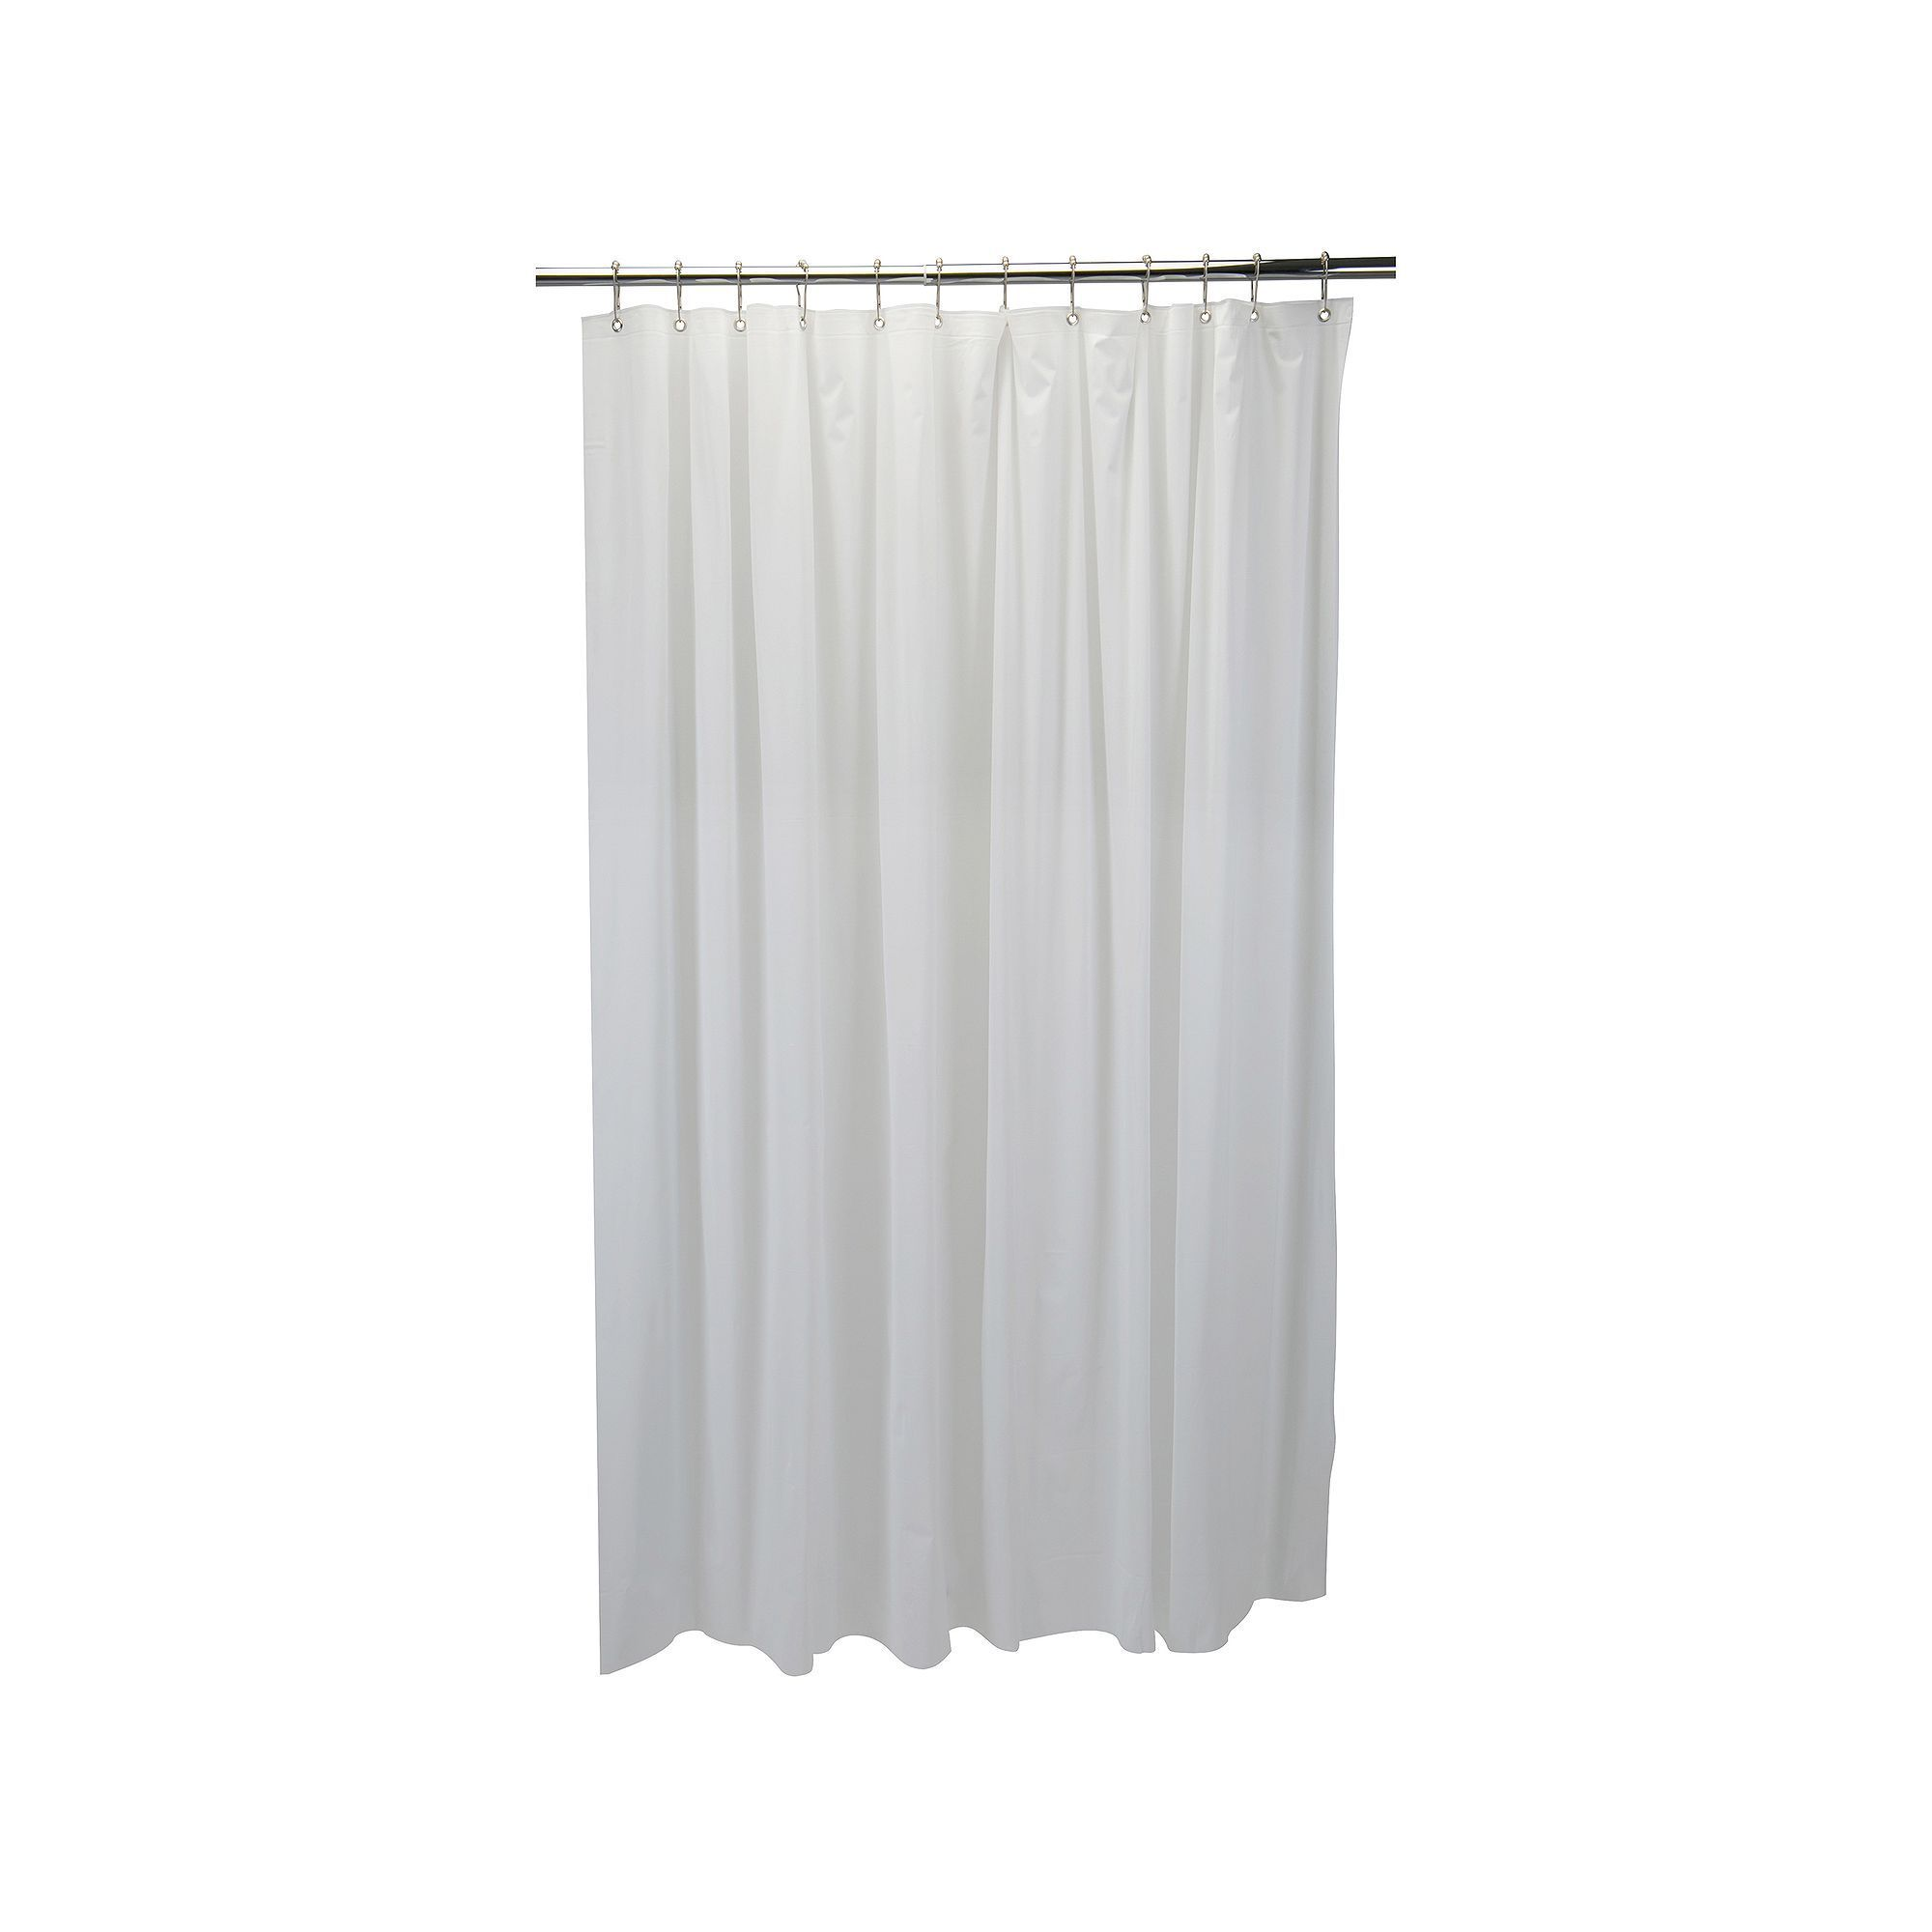 Bath Bliss White Mildew Resistant 6 Gauge Pvc Shower Curtain Liner Shower Liner Pvc Shower Vinyl Shower Curtains